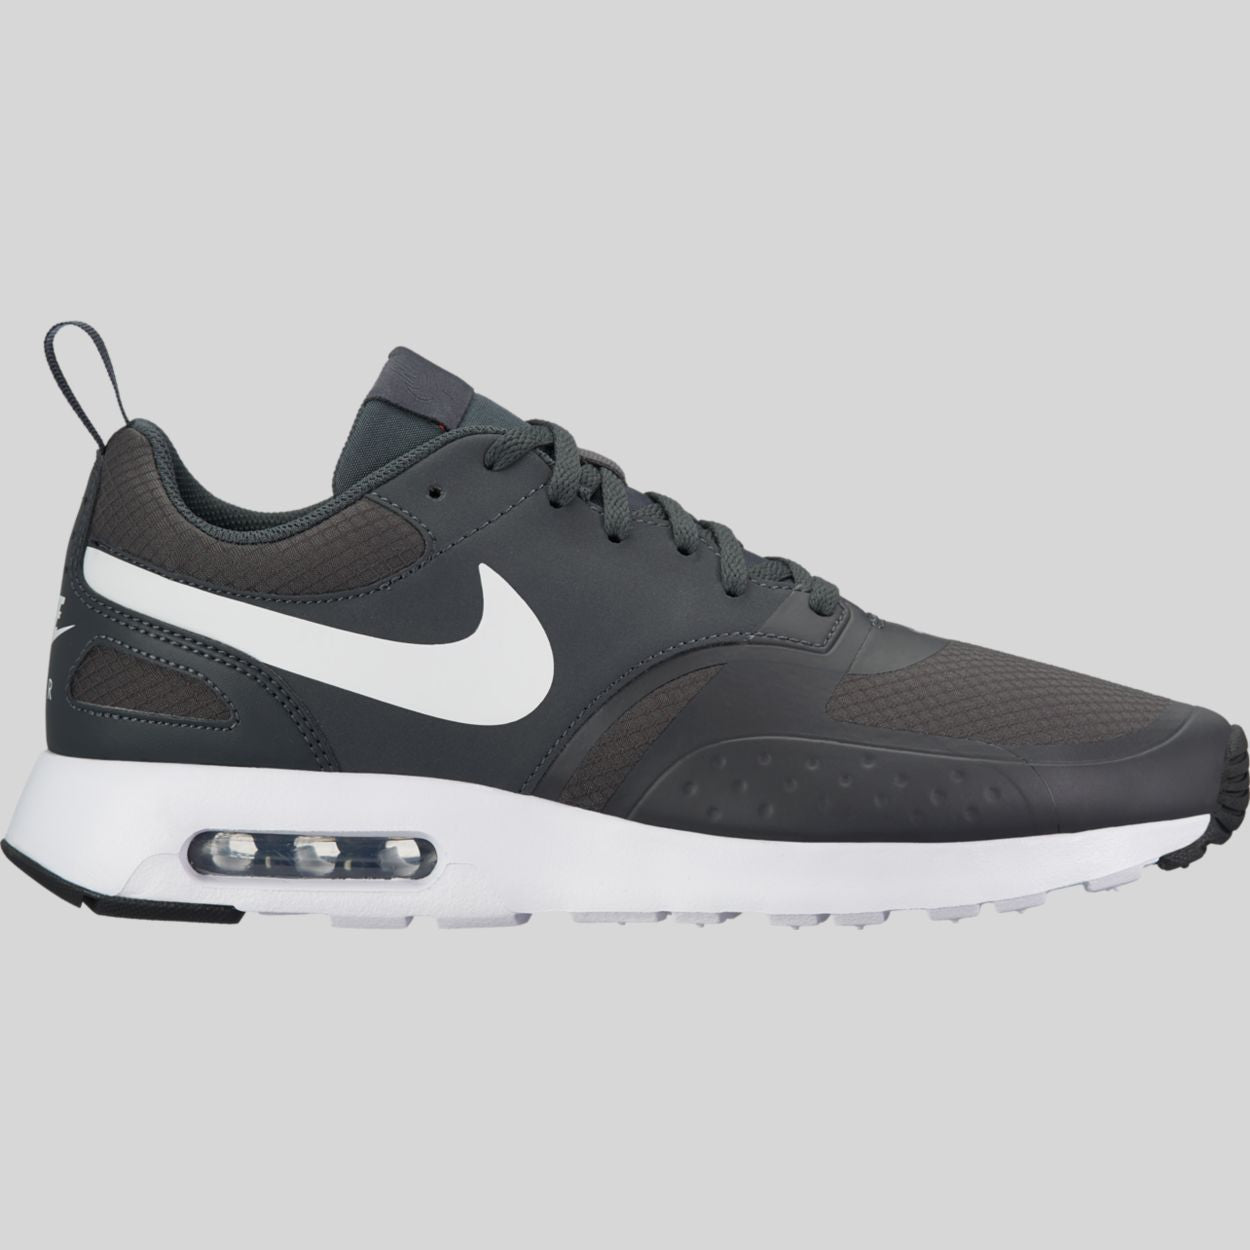 Nike AIR MAX VISION SE Anthracite White (918231-007)  a5ccdfbf7